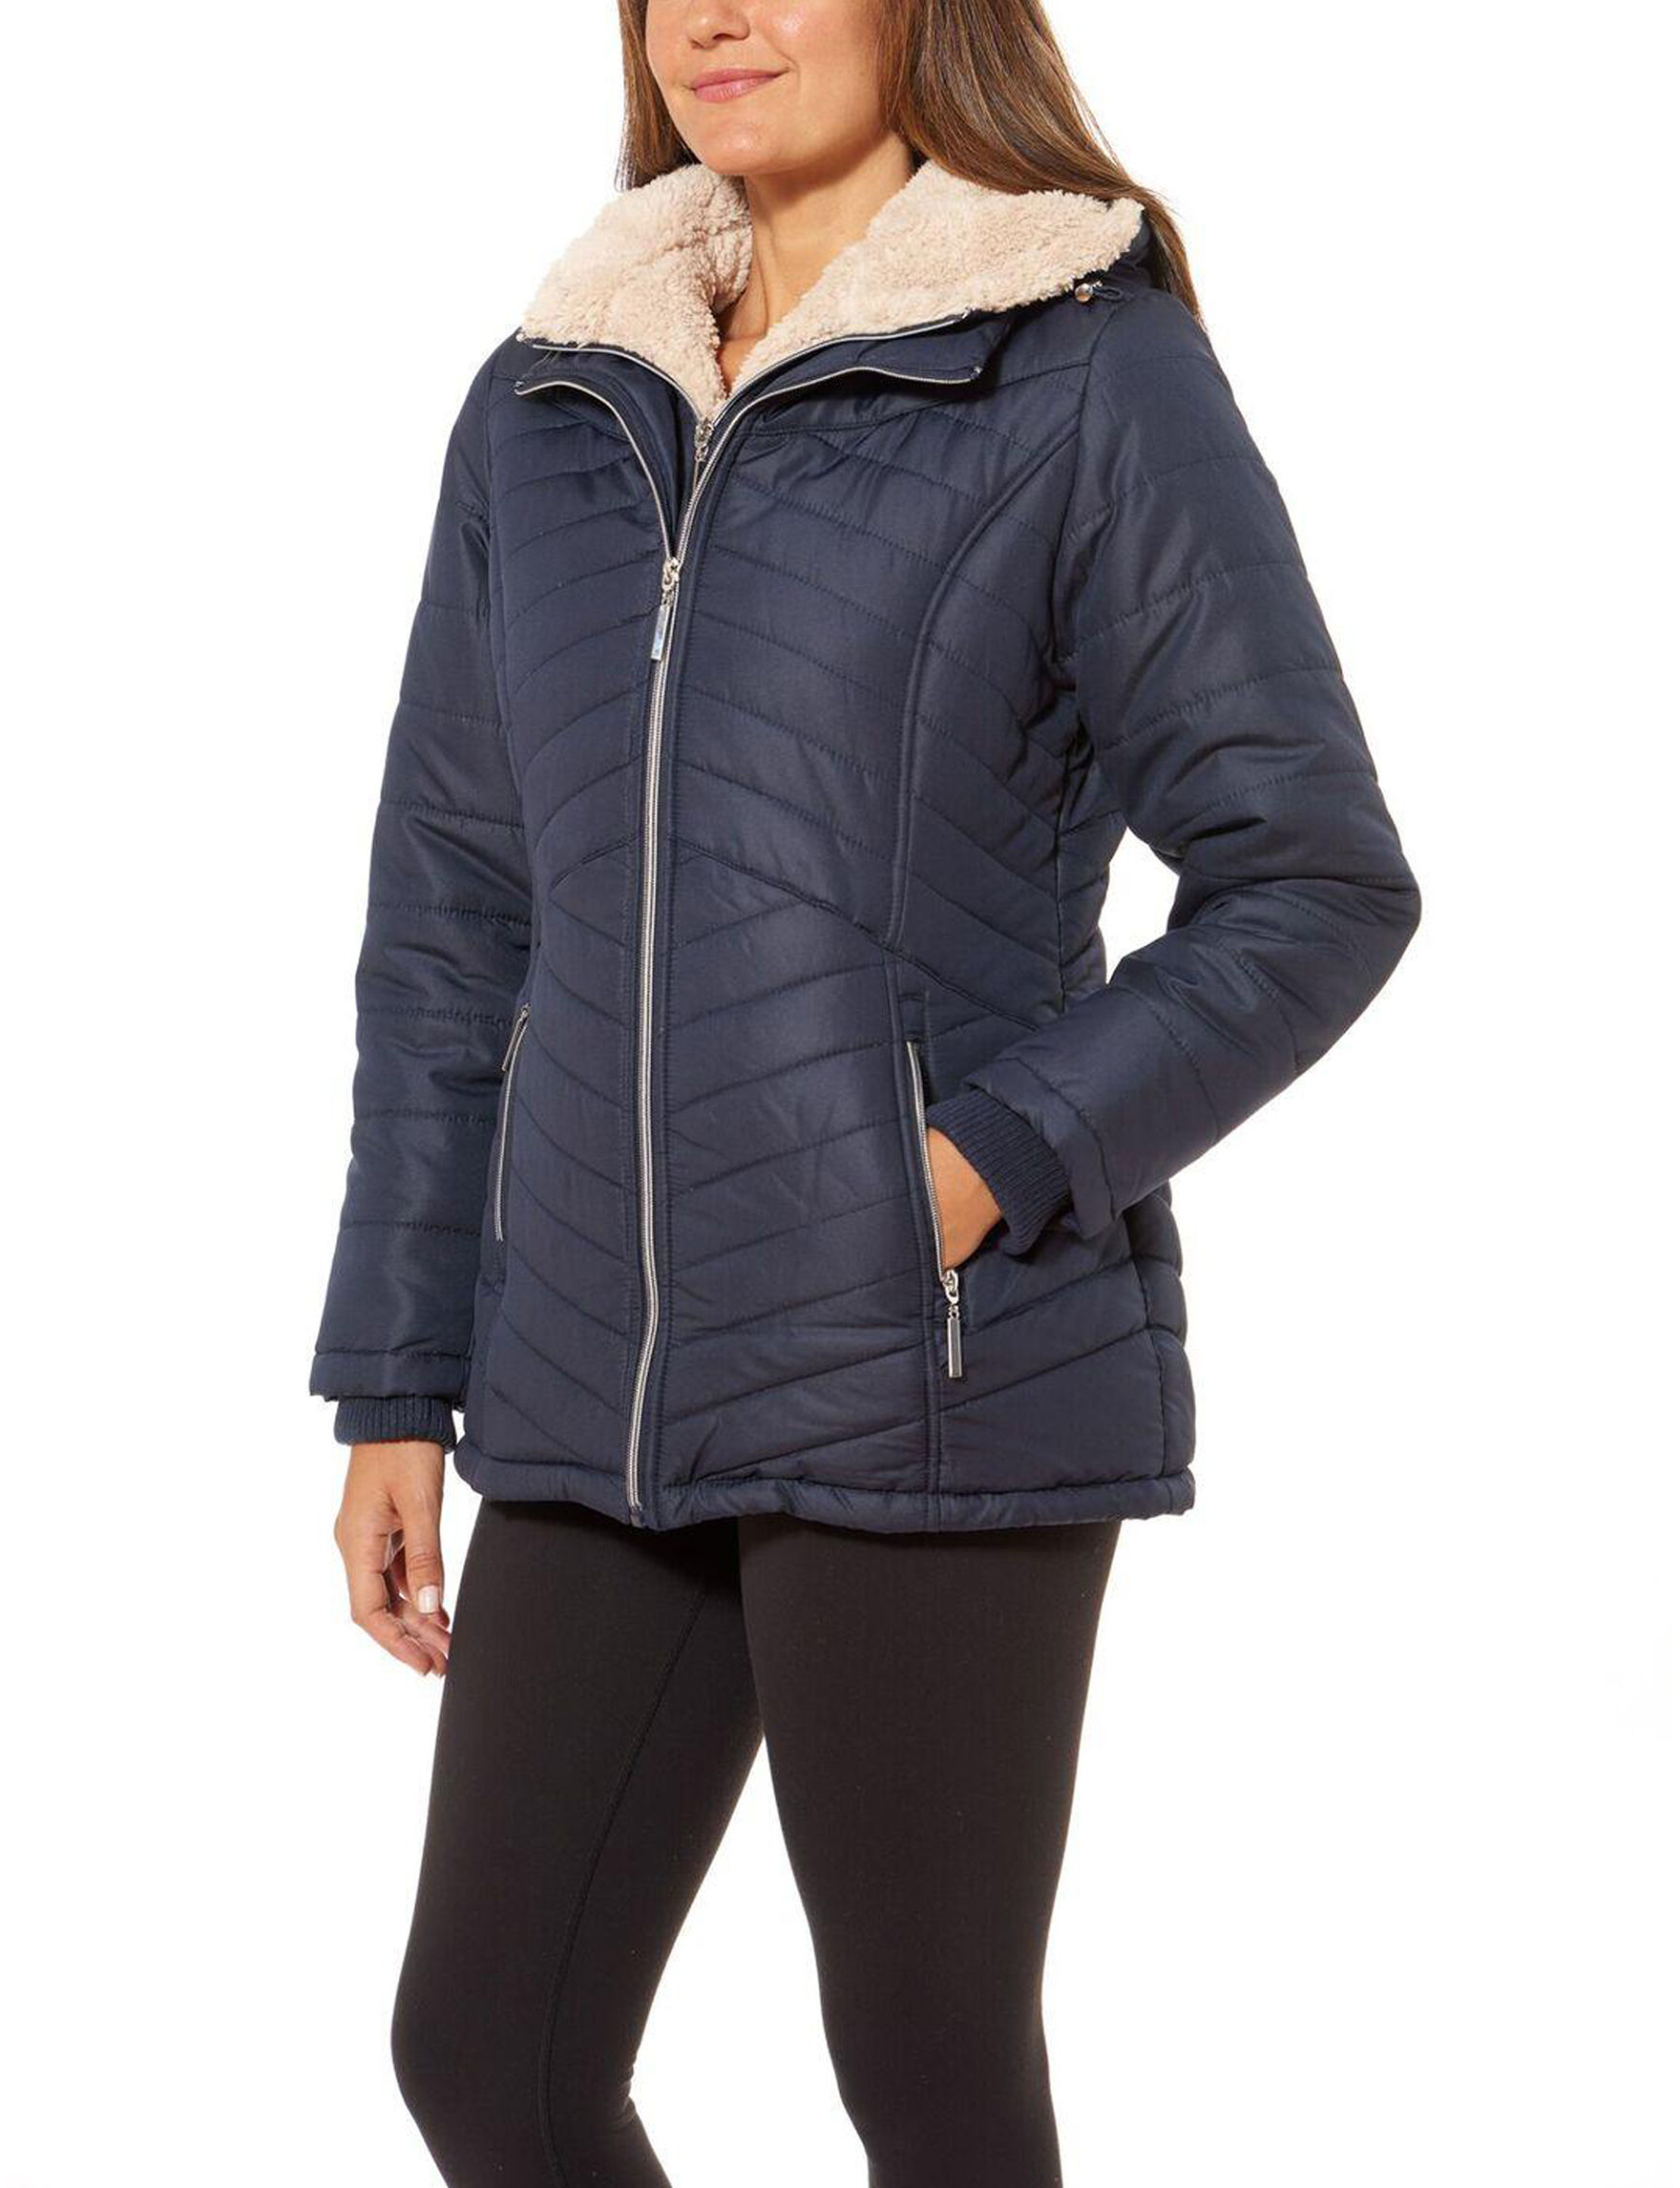 Details Stormy Night Puffer & Quilted Jackets